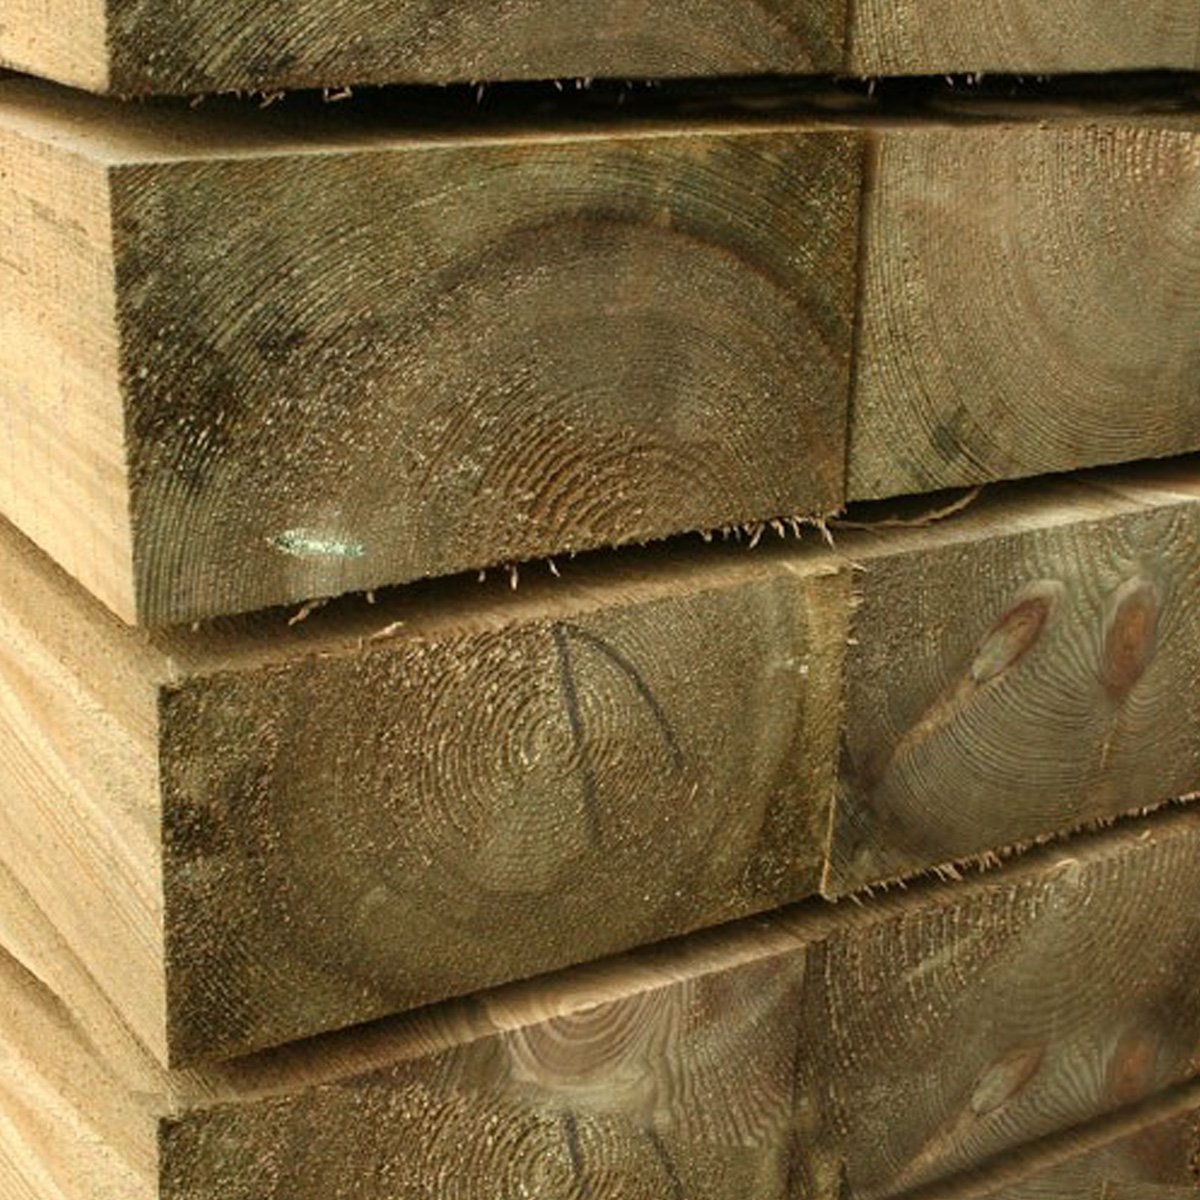 Timber Supplies Ipswich 225mm X 115mm Softwood Sleepers